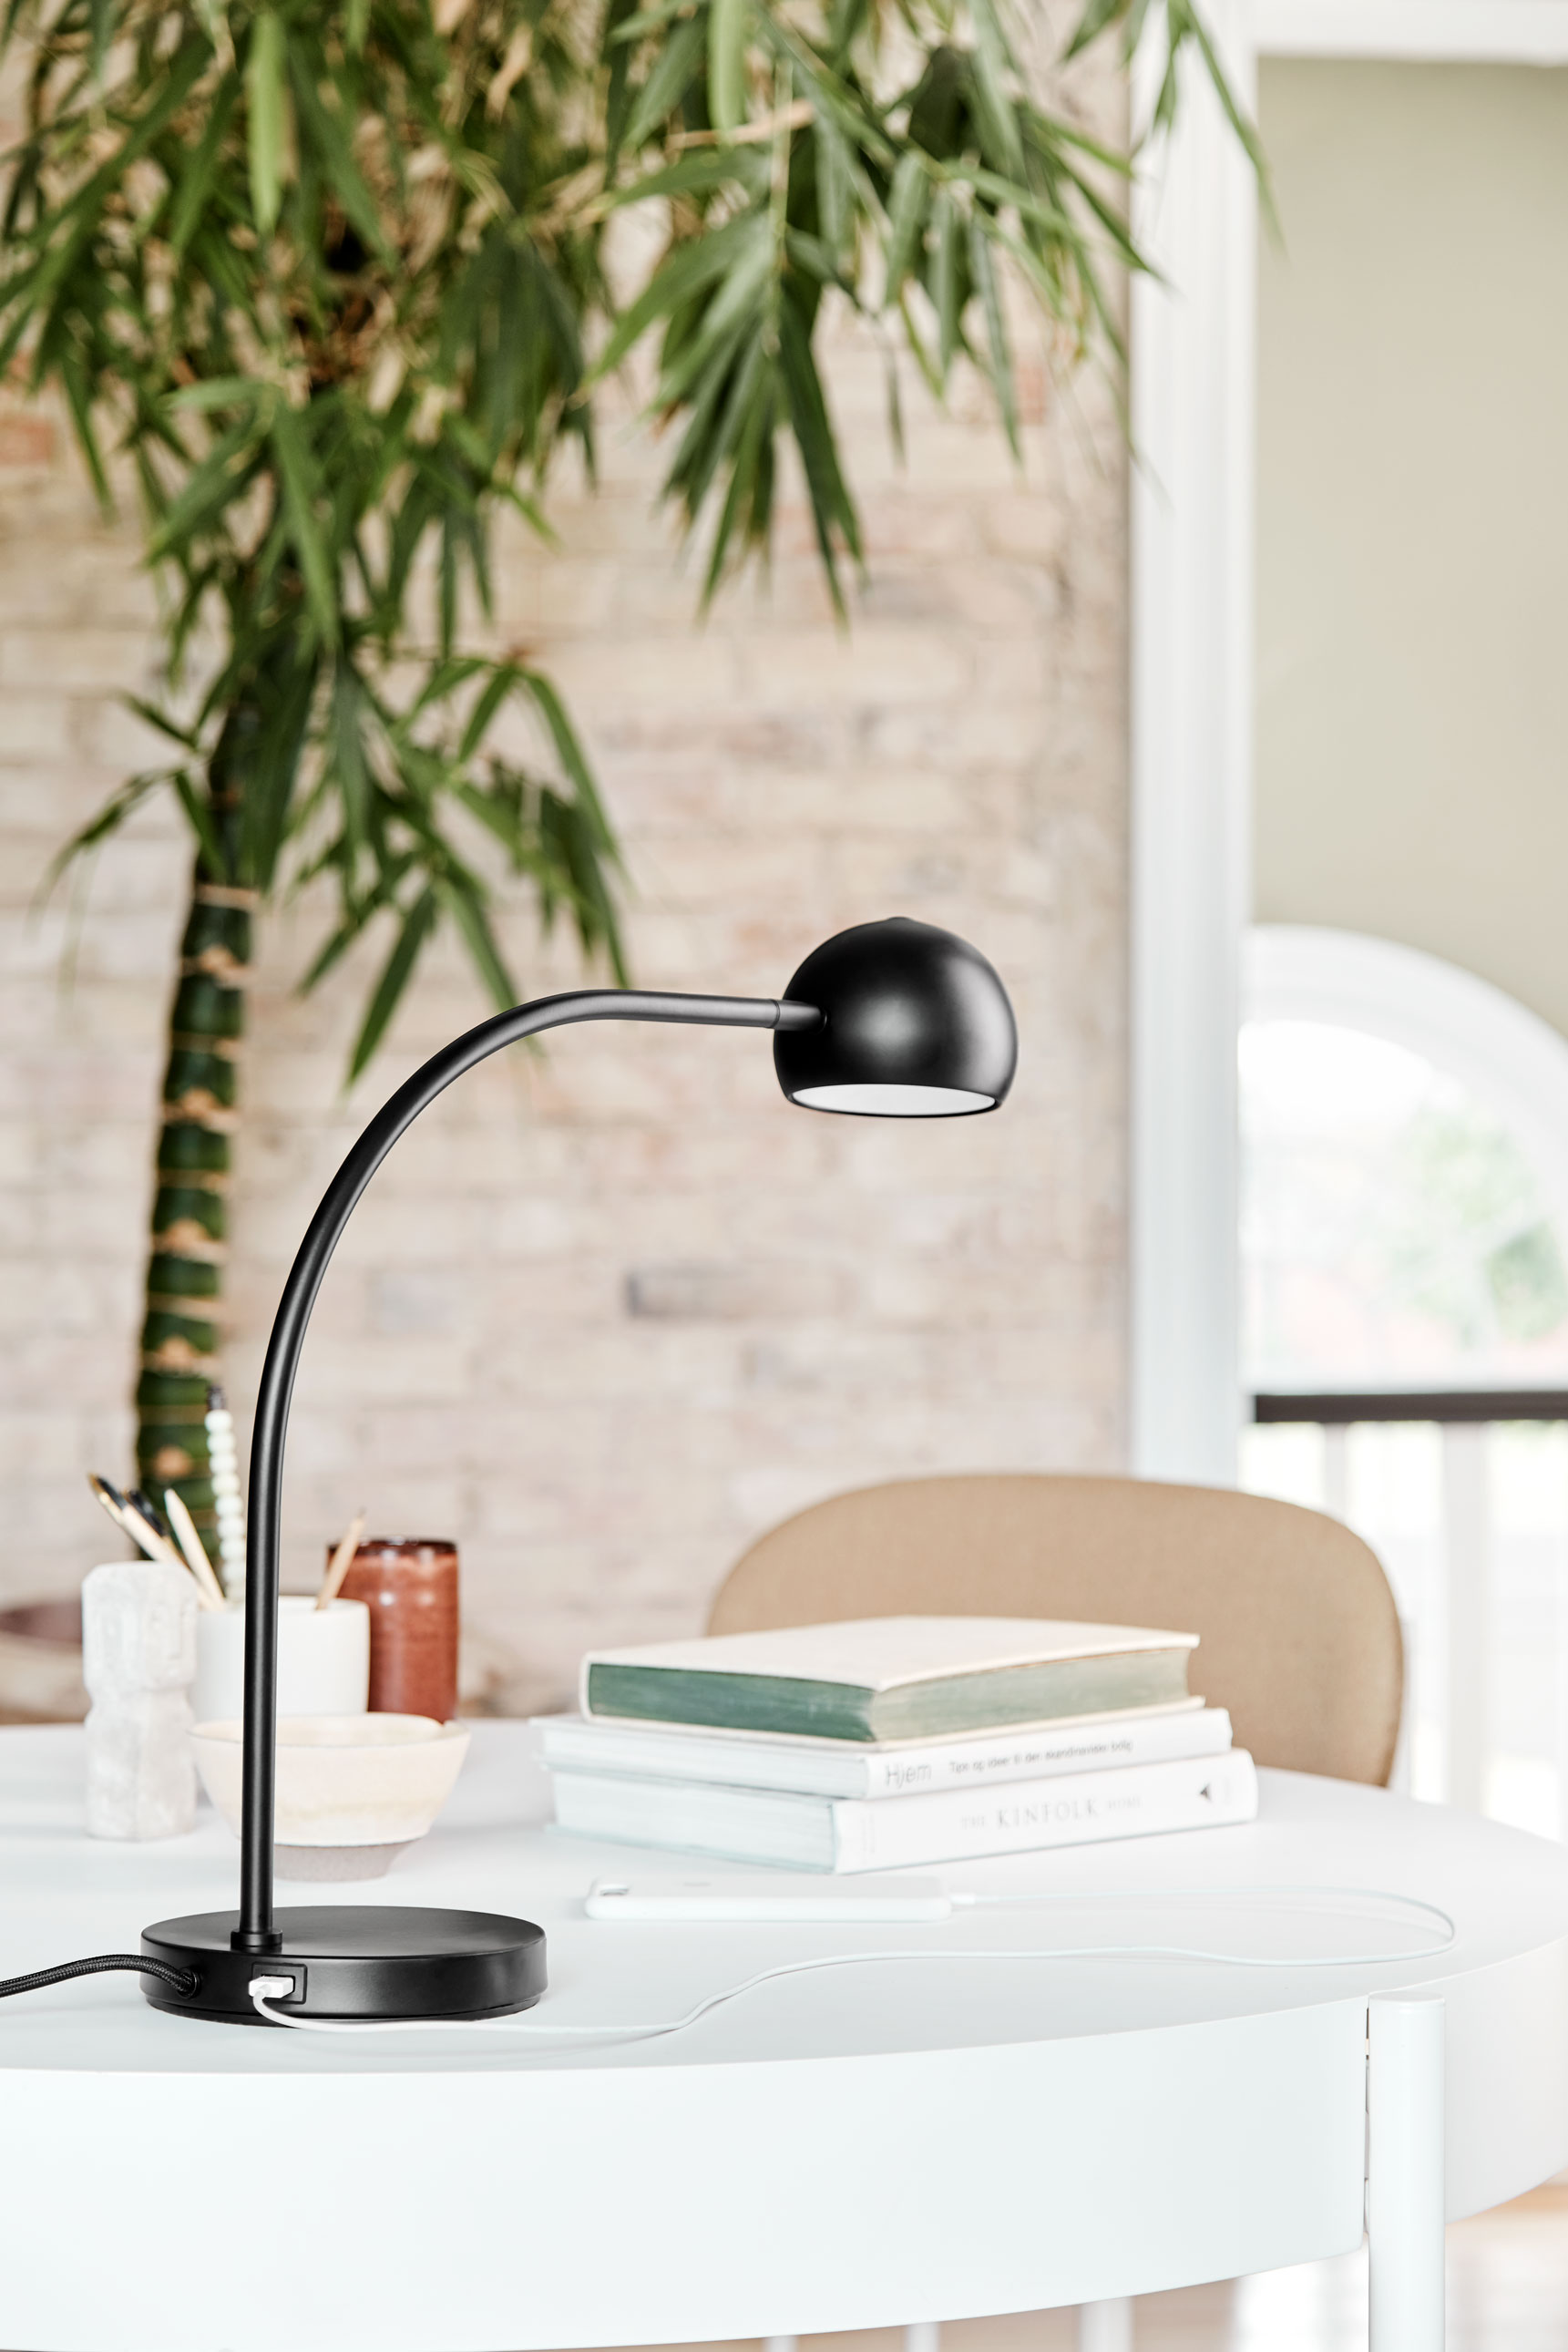 A year after the iconic Ball Lamp celebrated its 50th birthday, the familiar ball-shaped shade is set to occupy your desktop. And with its LED bulb and USB charger, it is even younger and more topical than ever.   READ